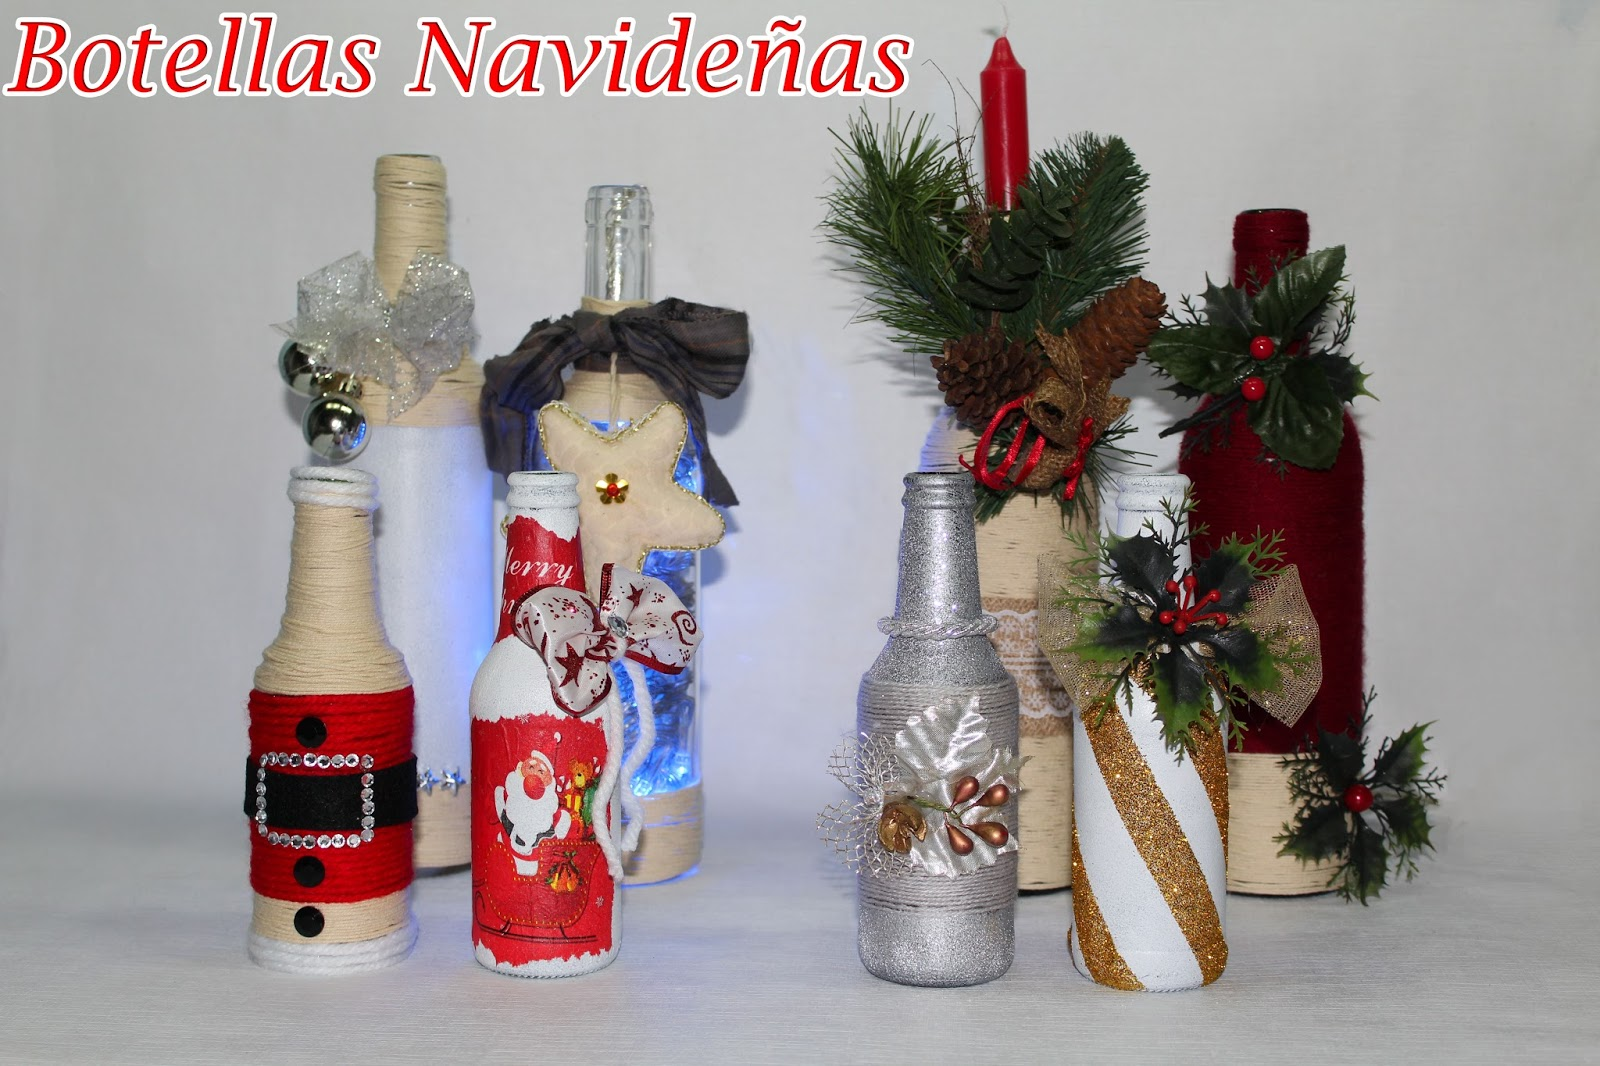 Botellas Decoradas Navideñas Manualidades Herme 8 Botellas Decoradas Navideñas